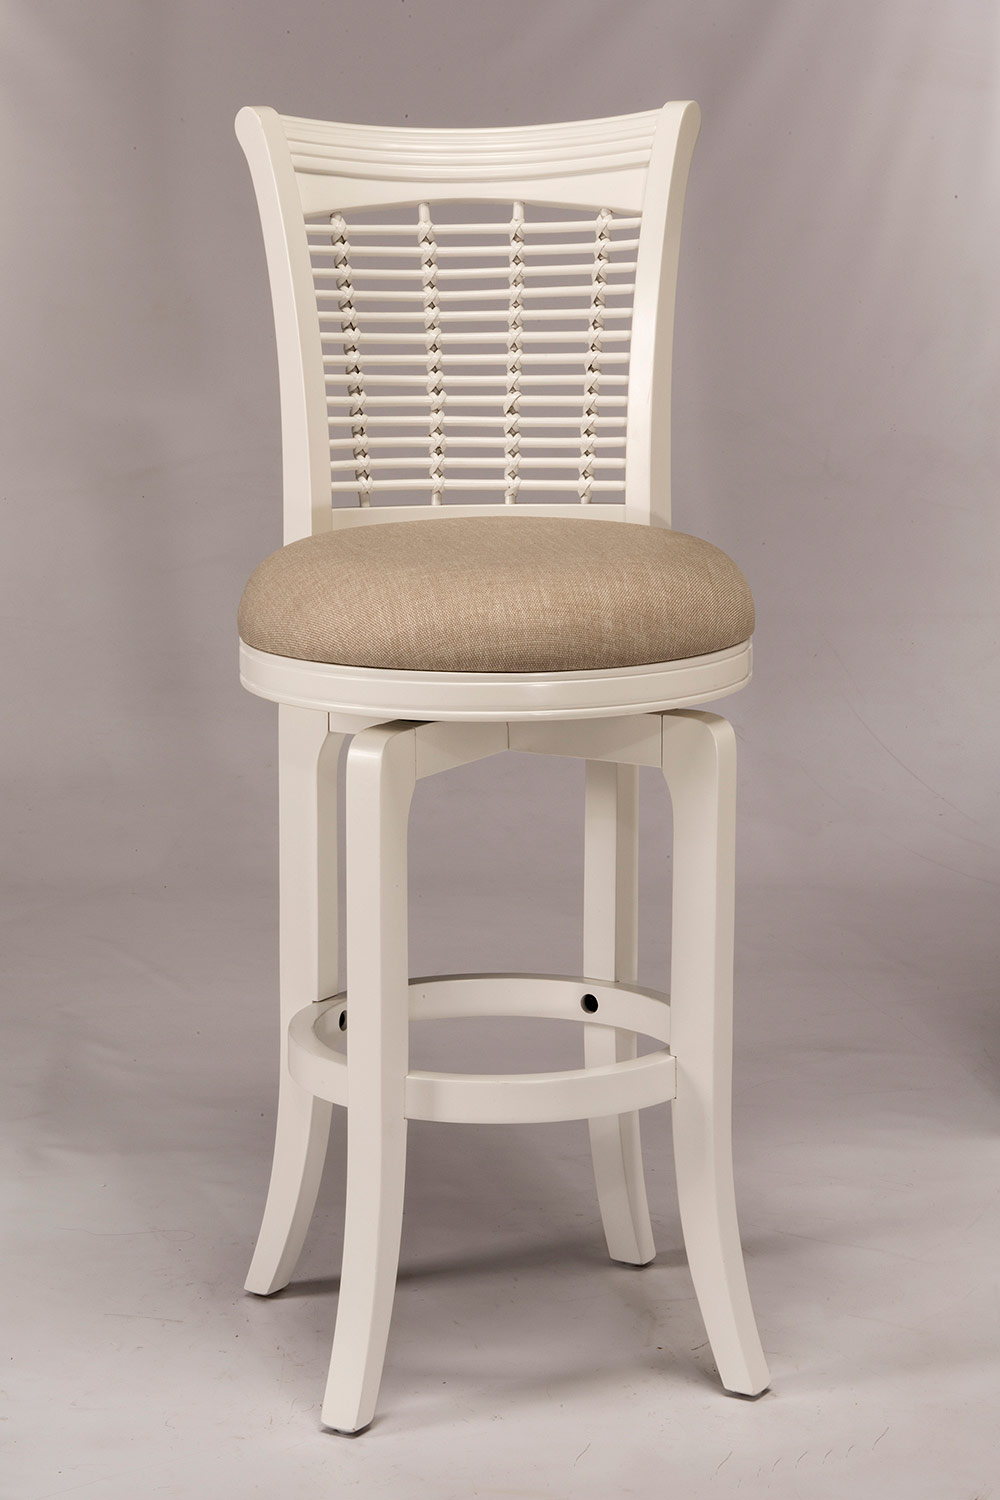 Hillsdale Bayberry Swivel Counter Stool White 5791 826